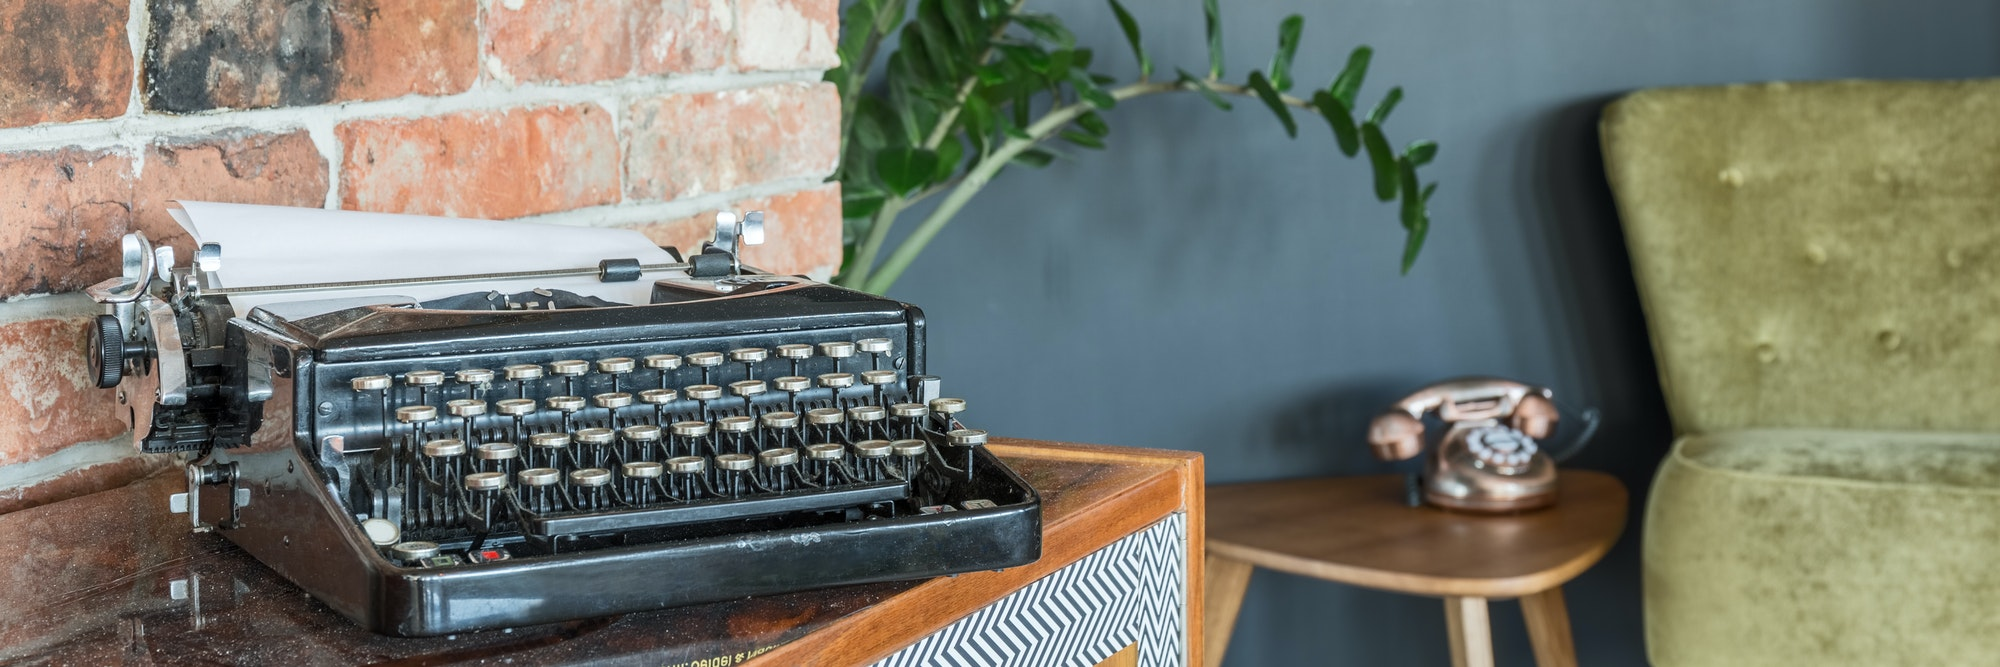 Antique typewriter and armchair